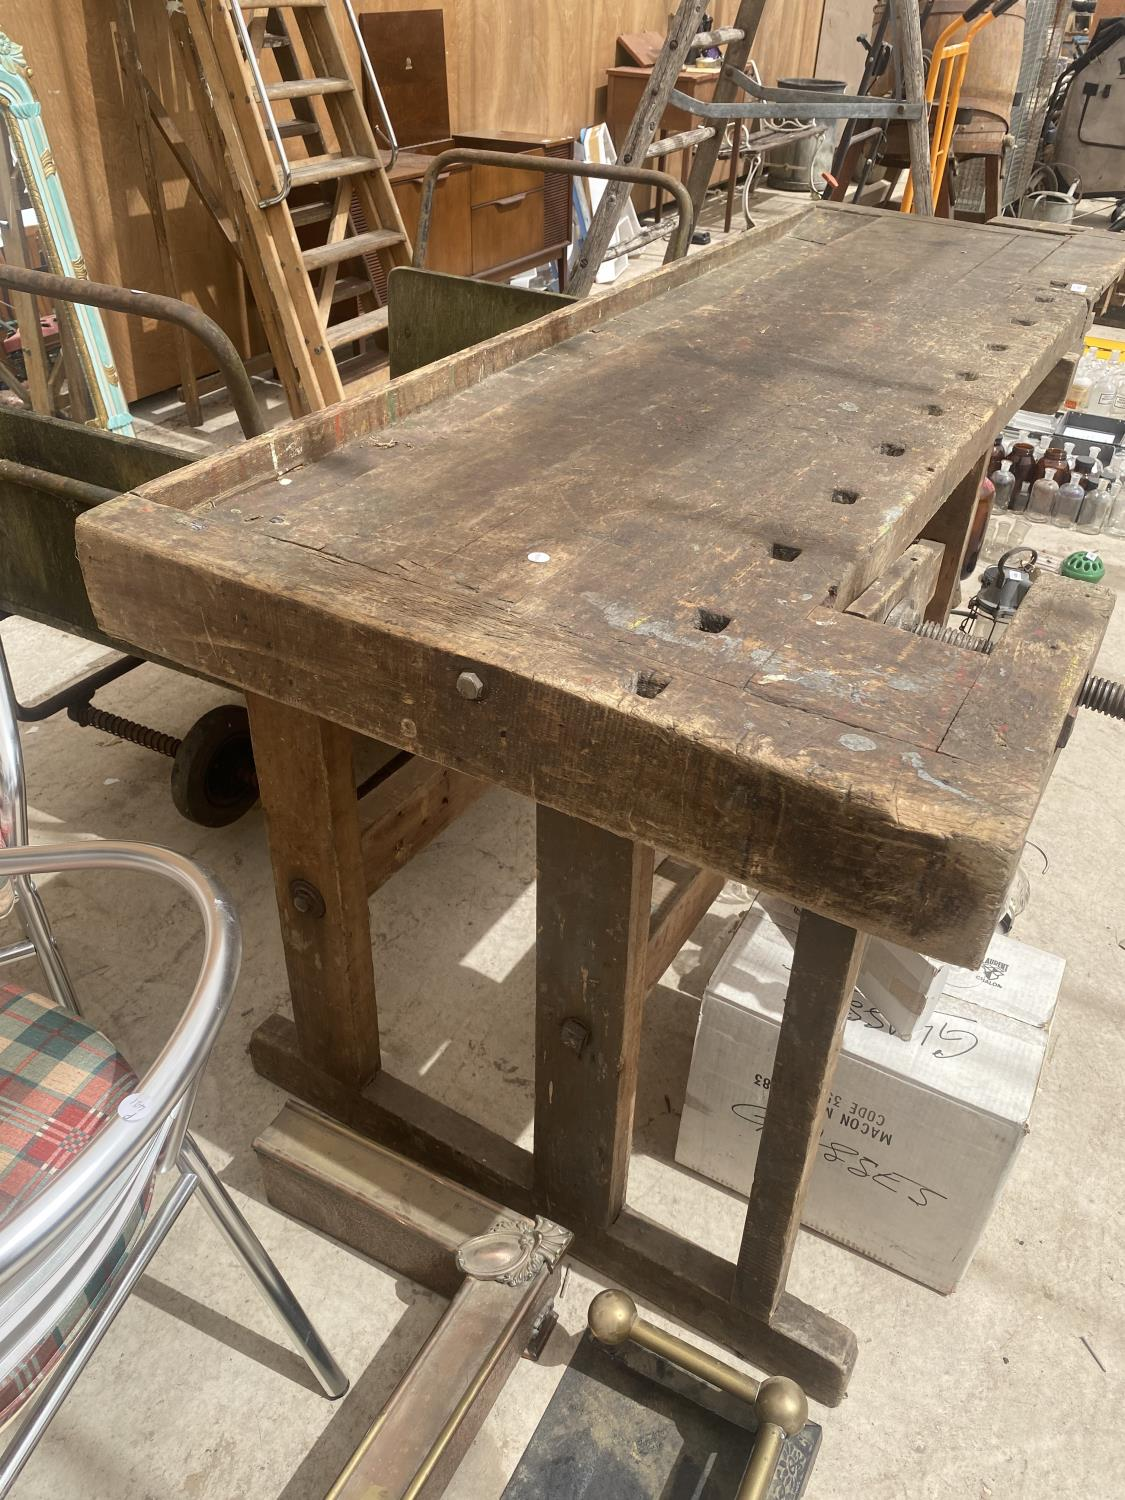 A LARGE VINTAGE WORK BENCH WITH A BENCH VICE - Image 4 of 5